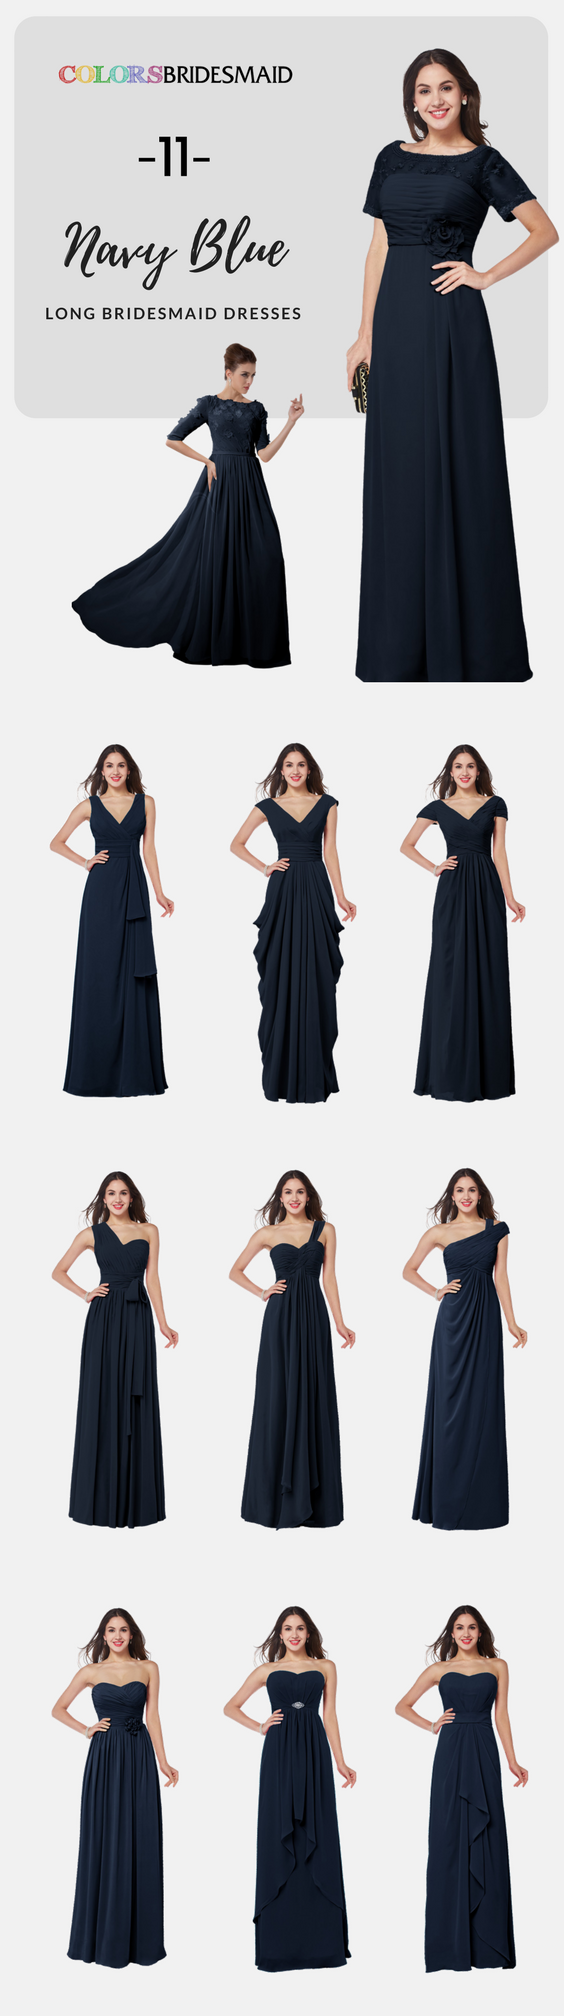 Long bridesmaid dresses in navy blue color in chiffon fabric looks